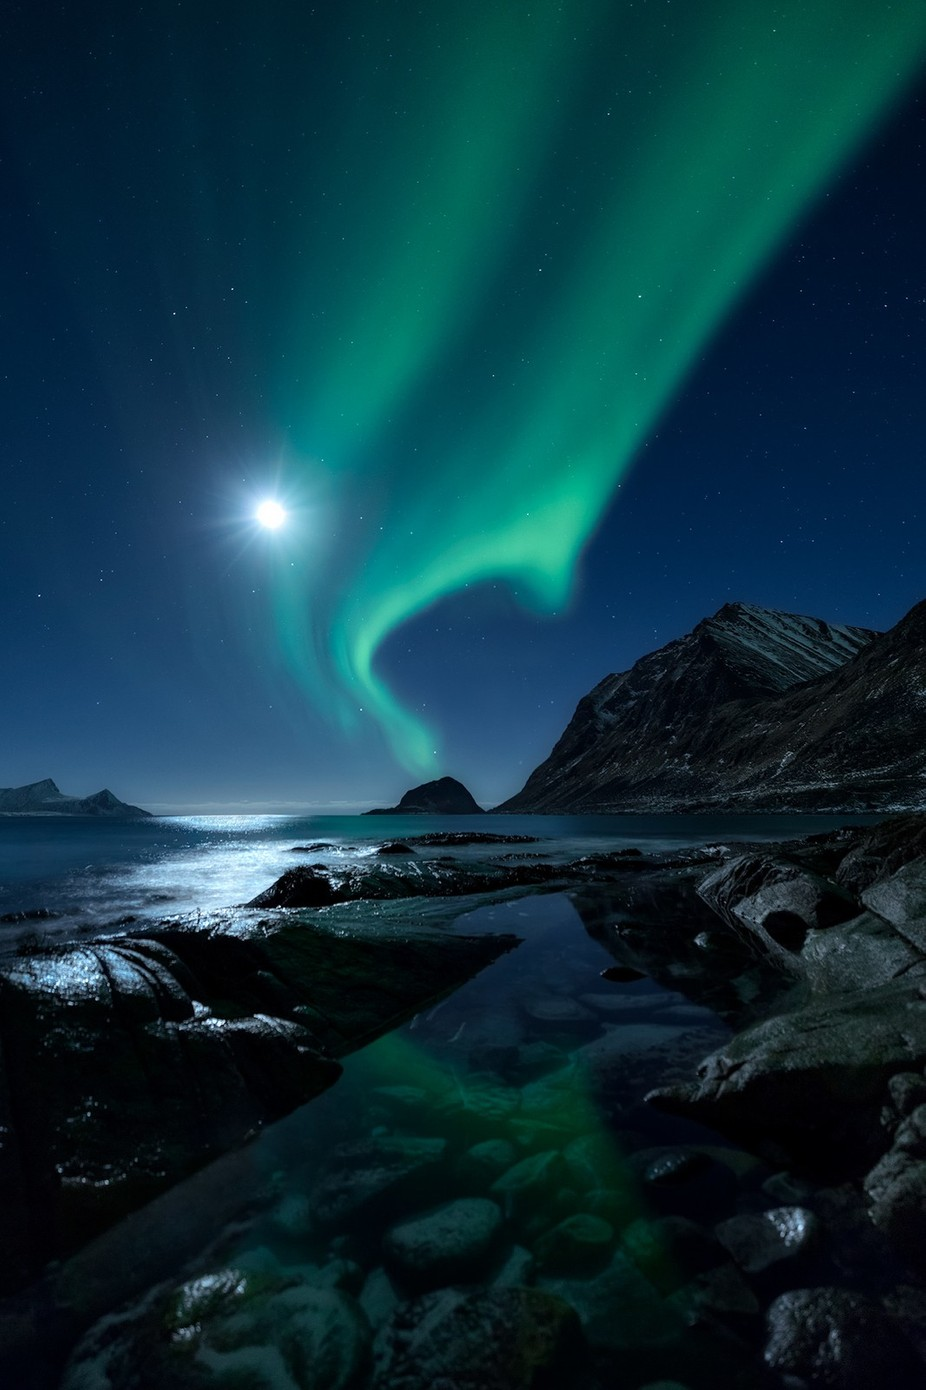 Aurorascape by Mbeiter - The Night And The Mountains Photo Contest